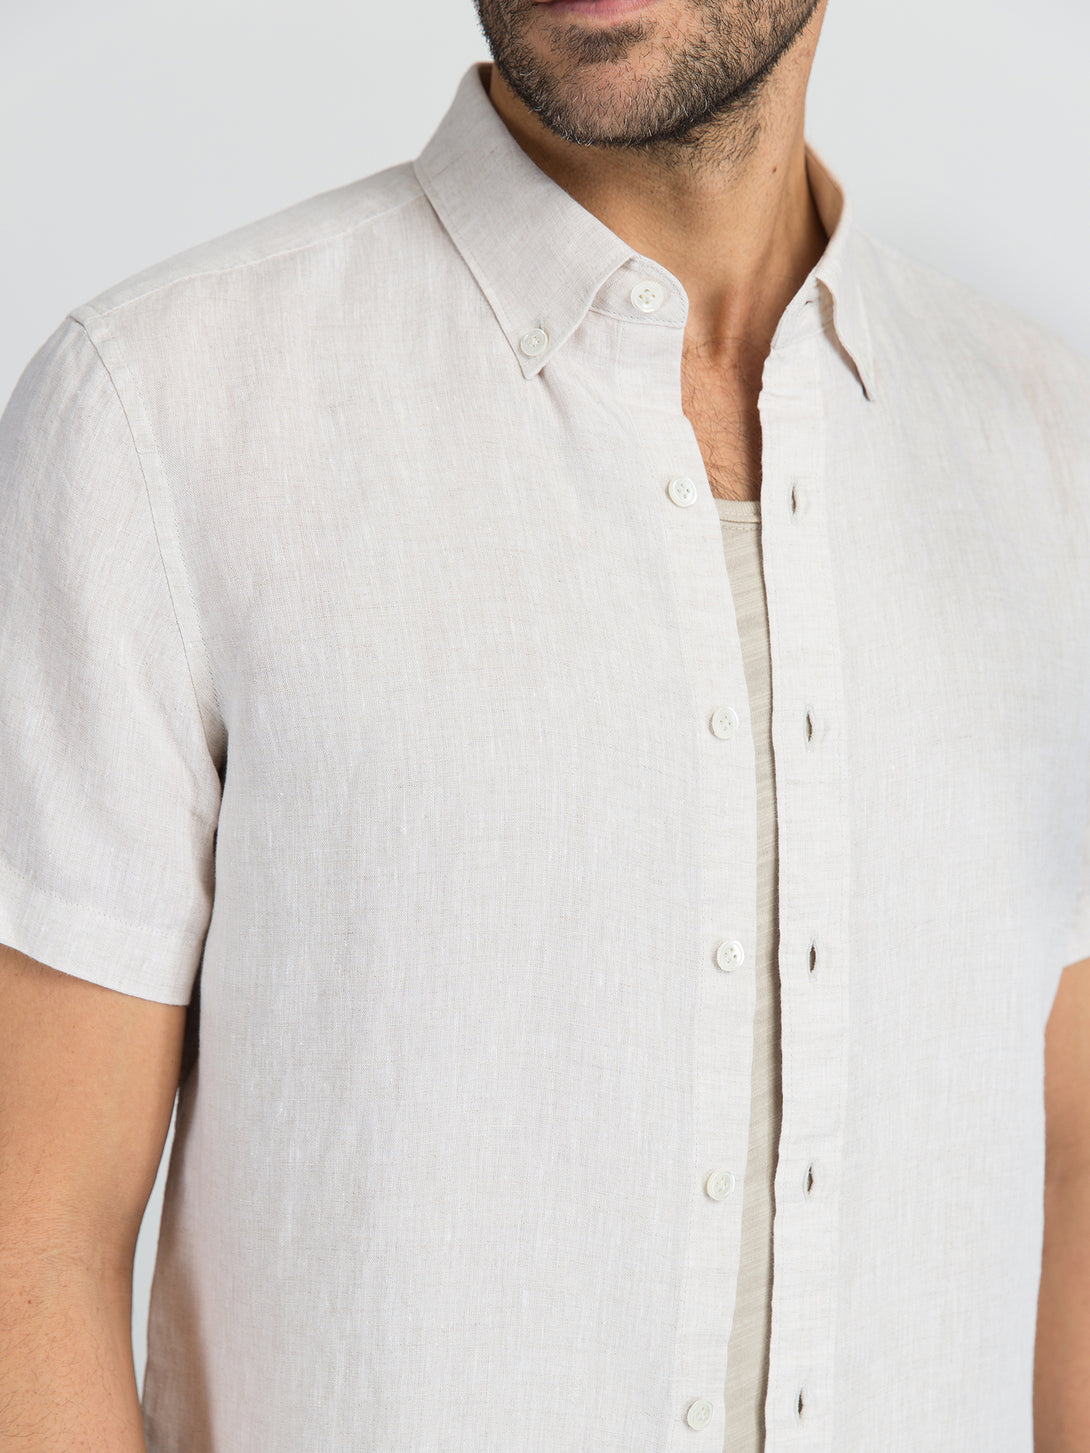 ons garage men's shirt SAND